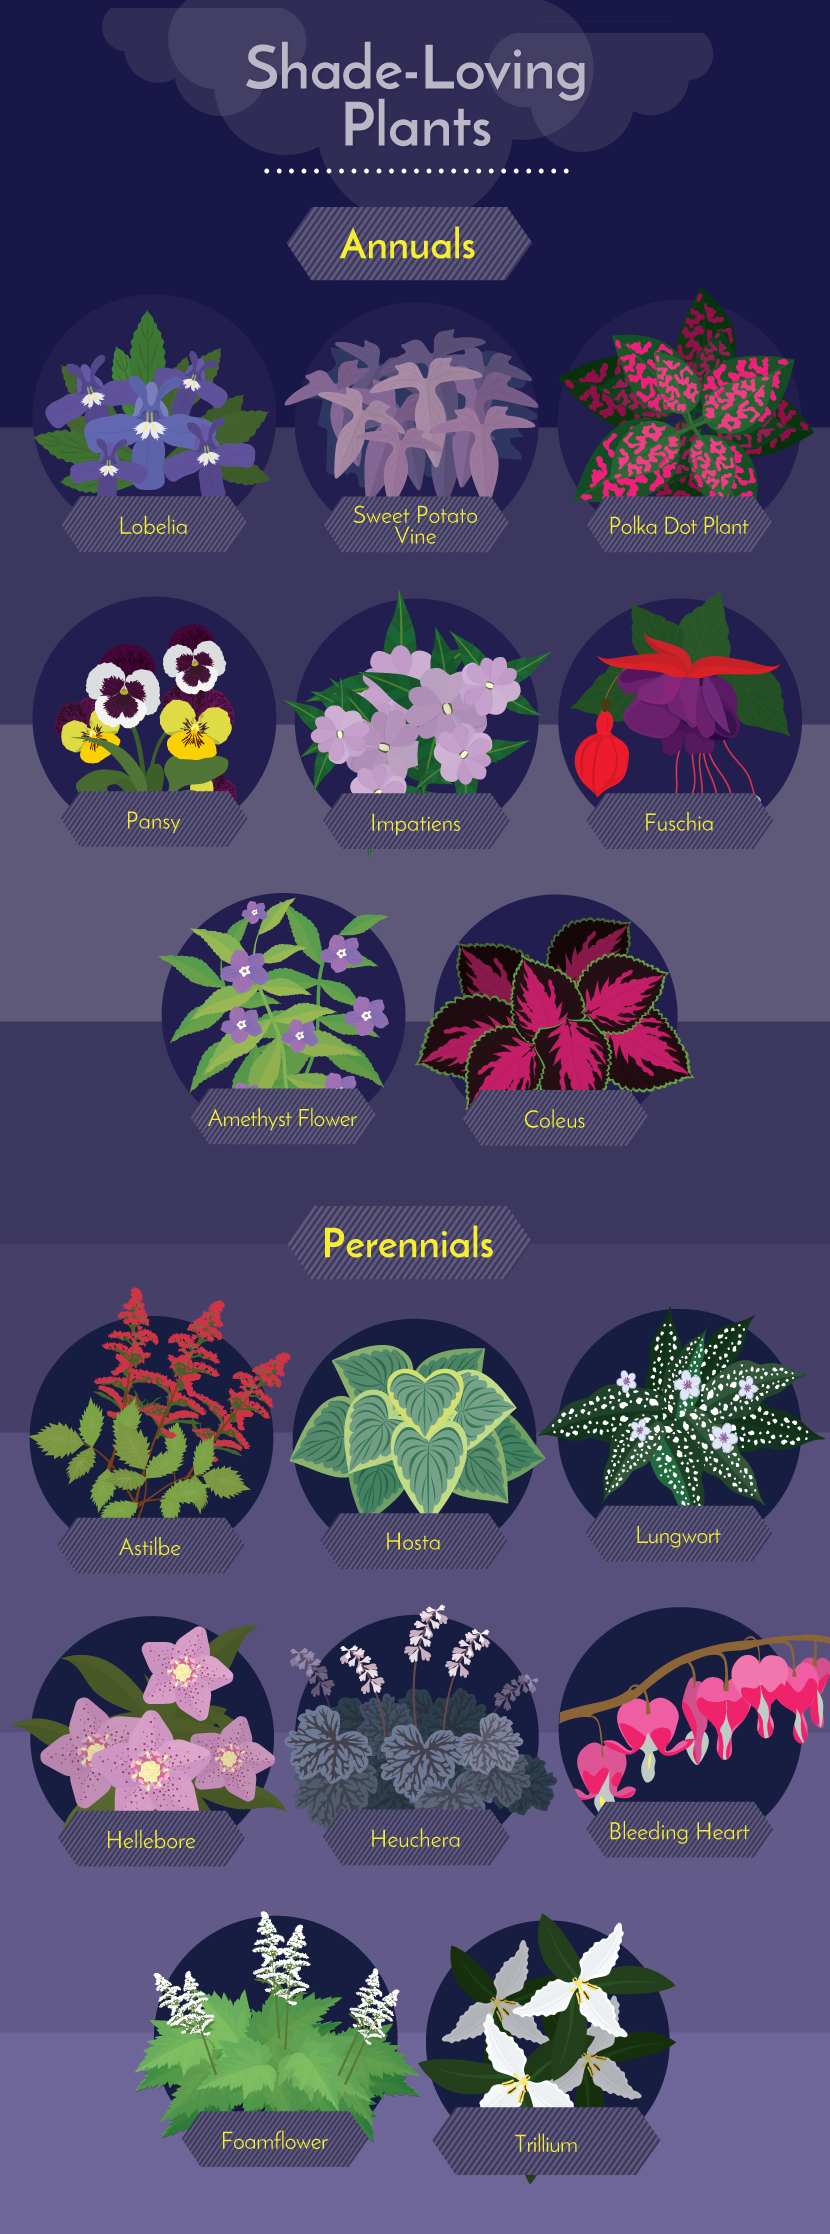 ShadeLoving Plants  Working With Challenging Garden Styles